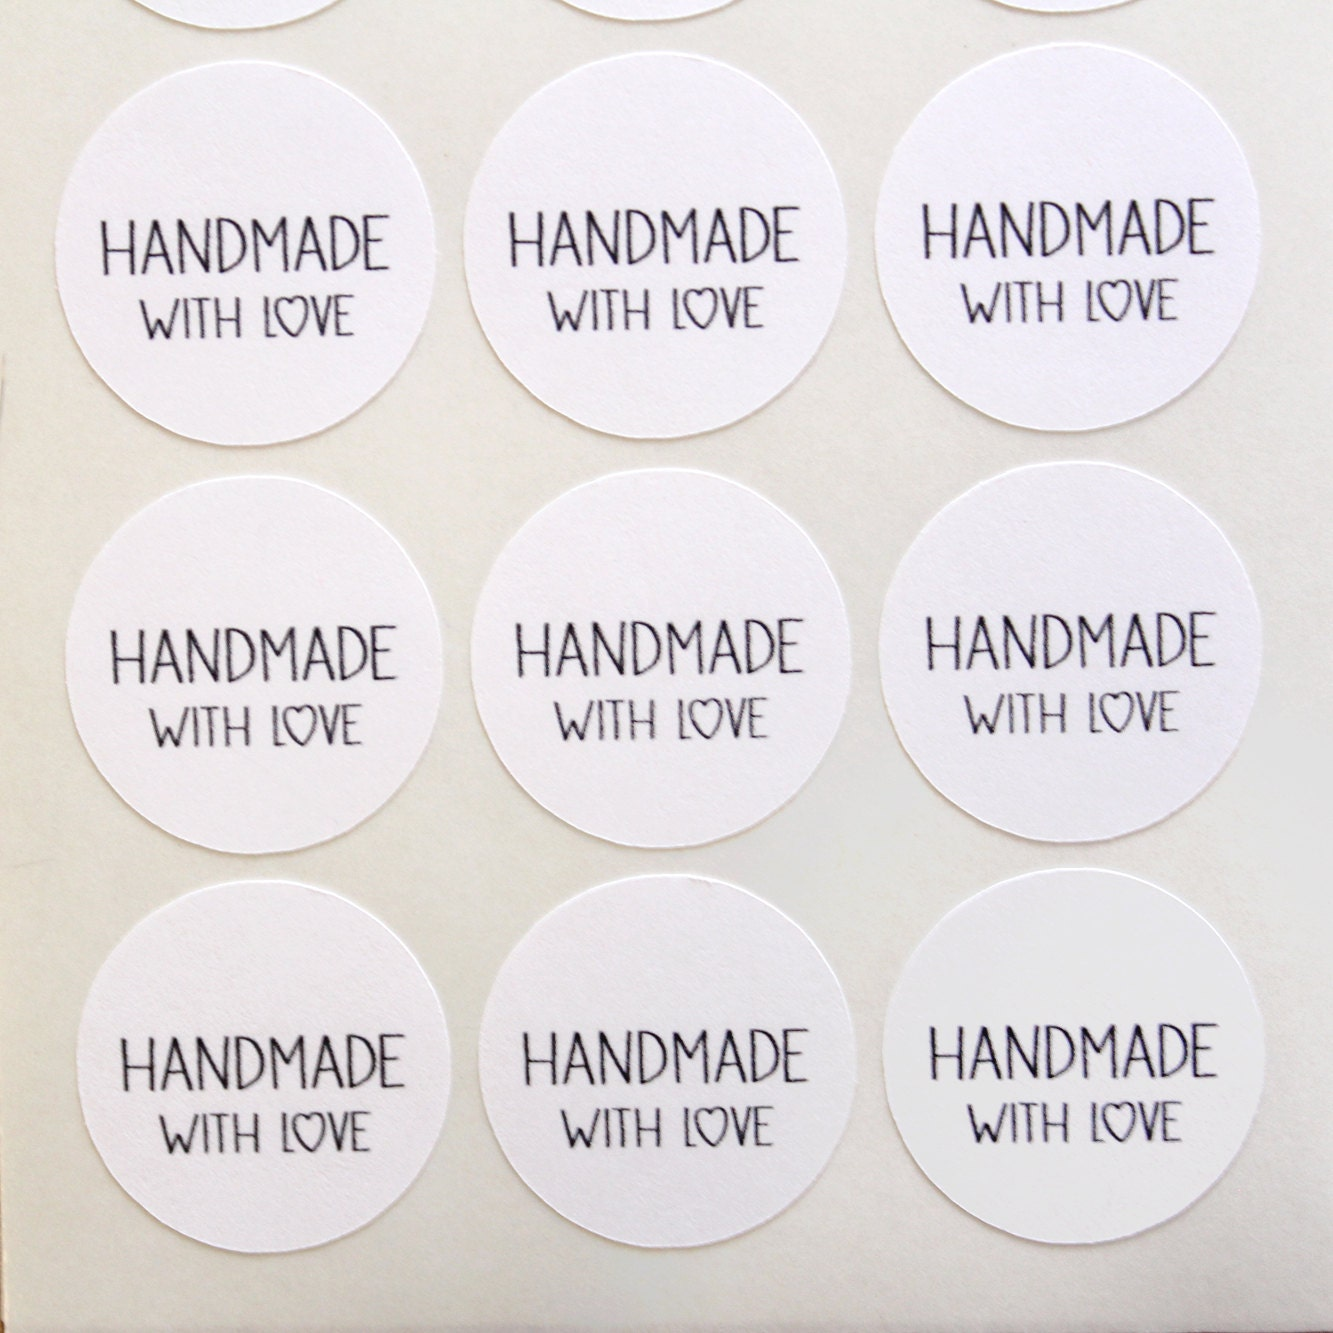 handmade with love sticker round handmade by nicepackagedesign